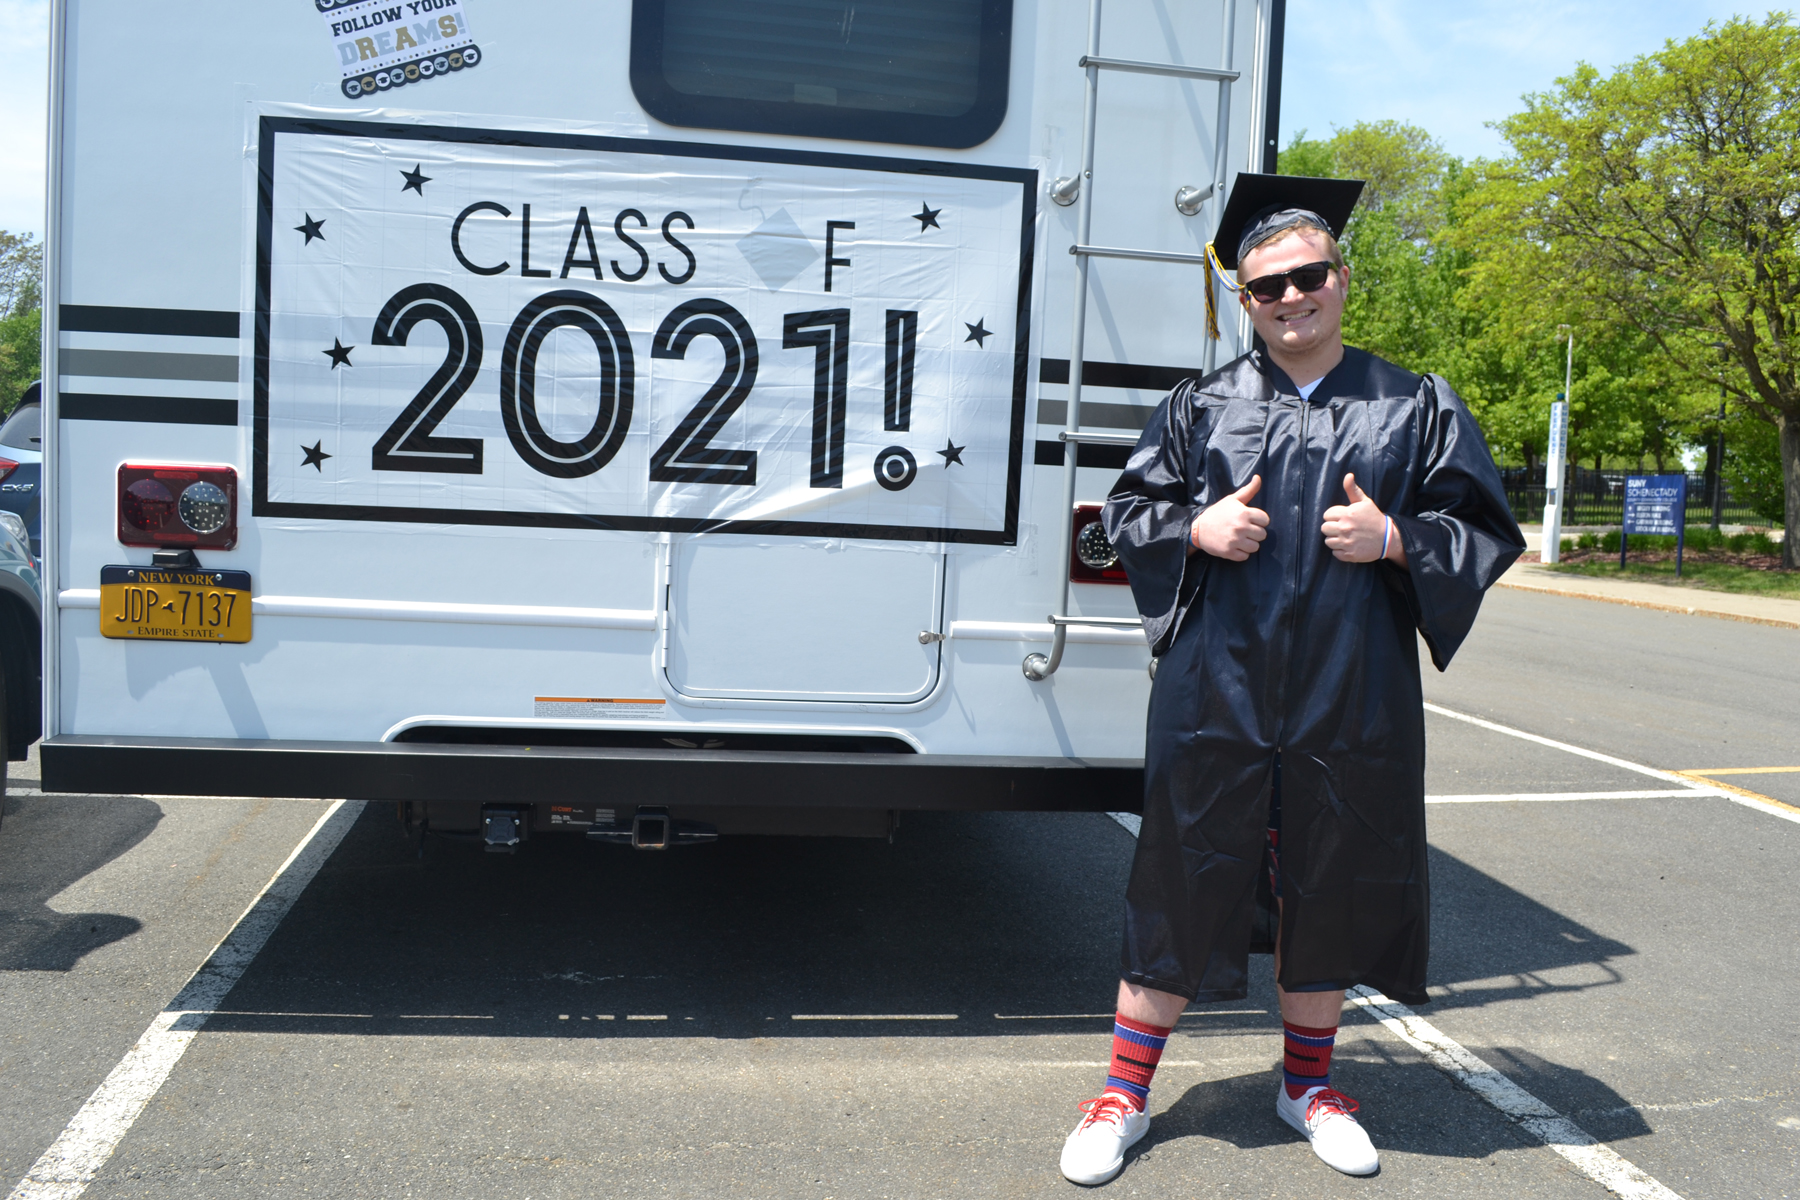 William Gross in cap and gown near RV.